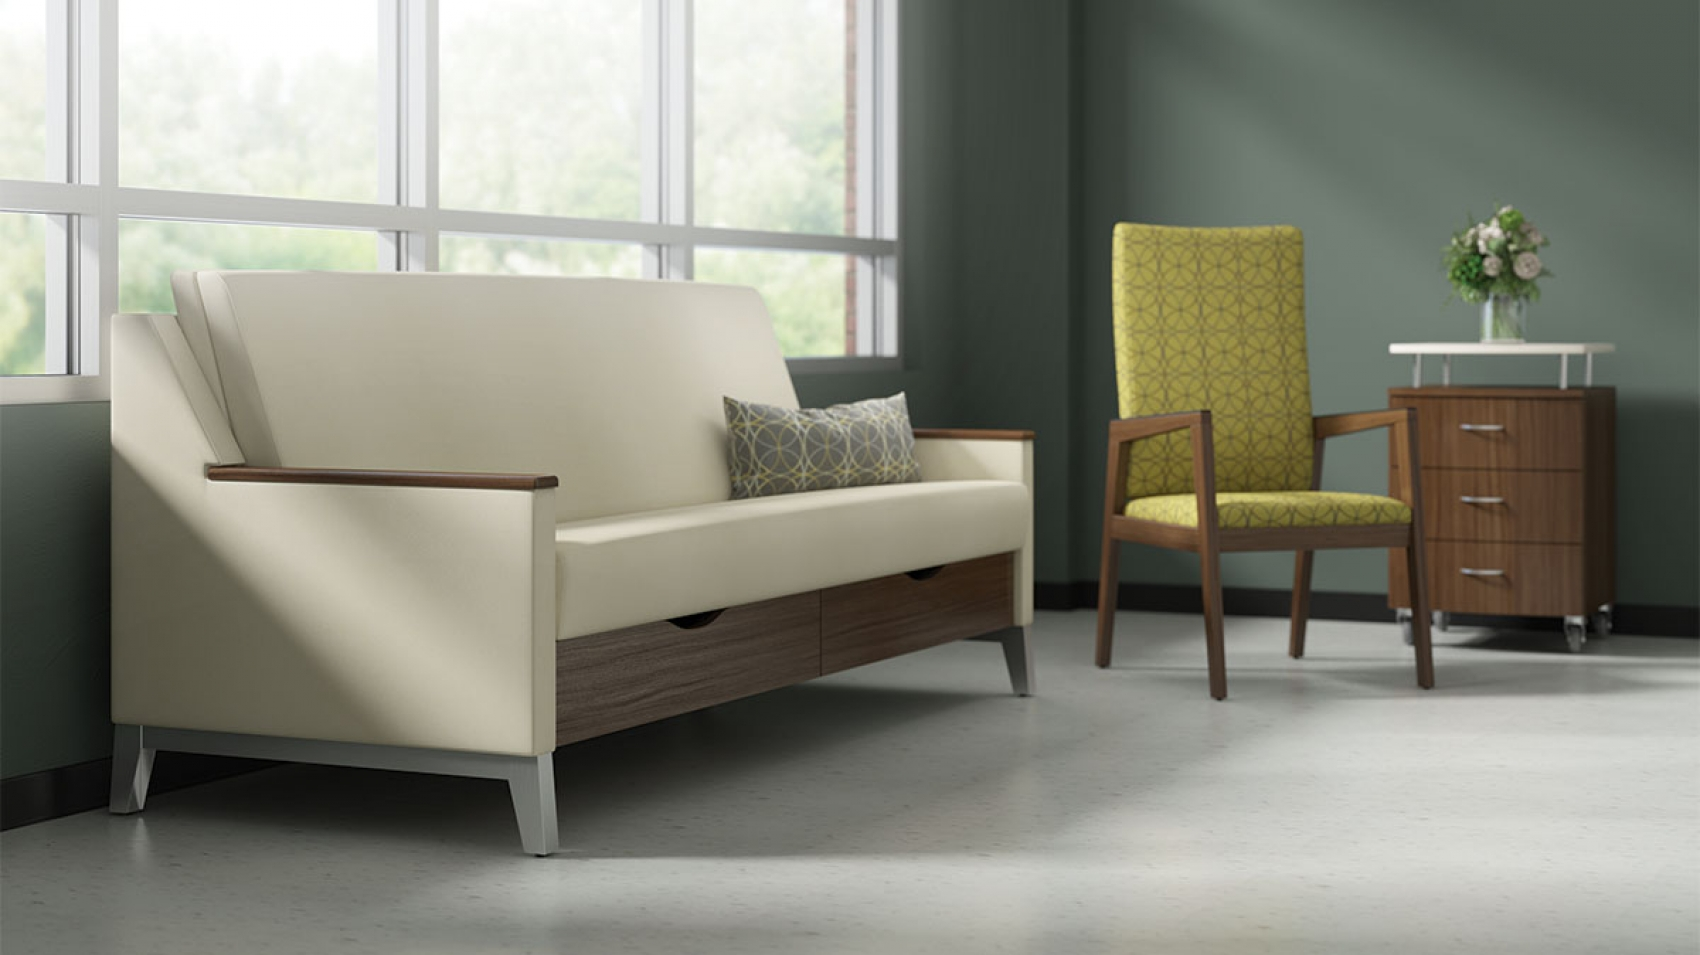 Charmant Reverie Is A Sleepover Sofa For Healthcare Spaces That Offers Supreme Form  And Function. Thoughtfully Designed With Multiple Arm Styles, ...